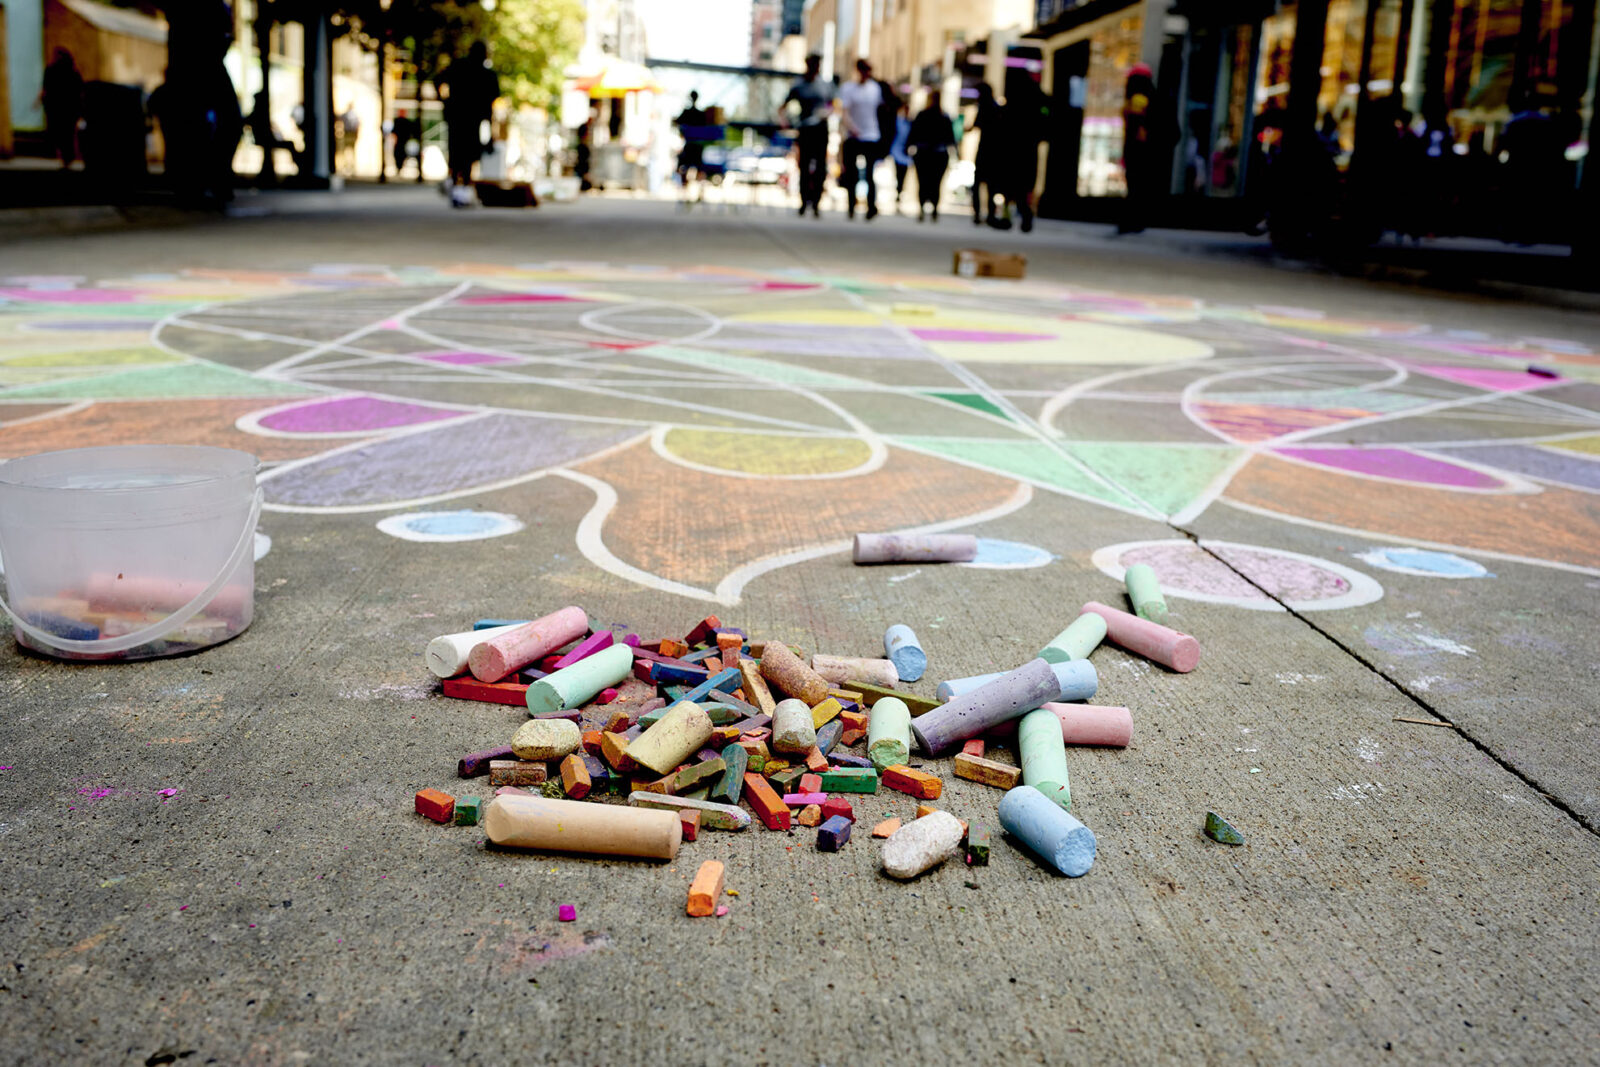 A community chalk mandala in progress during the 2019 Minneapolis Street Art Fest on Nicollet Mall. Tony Nelson Photography